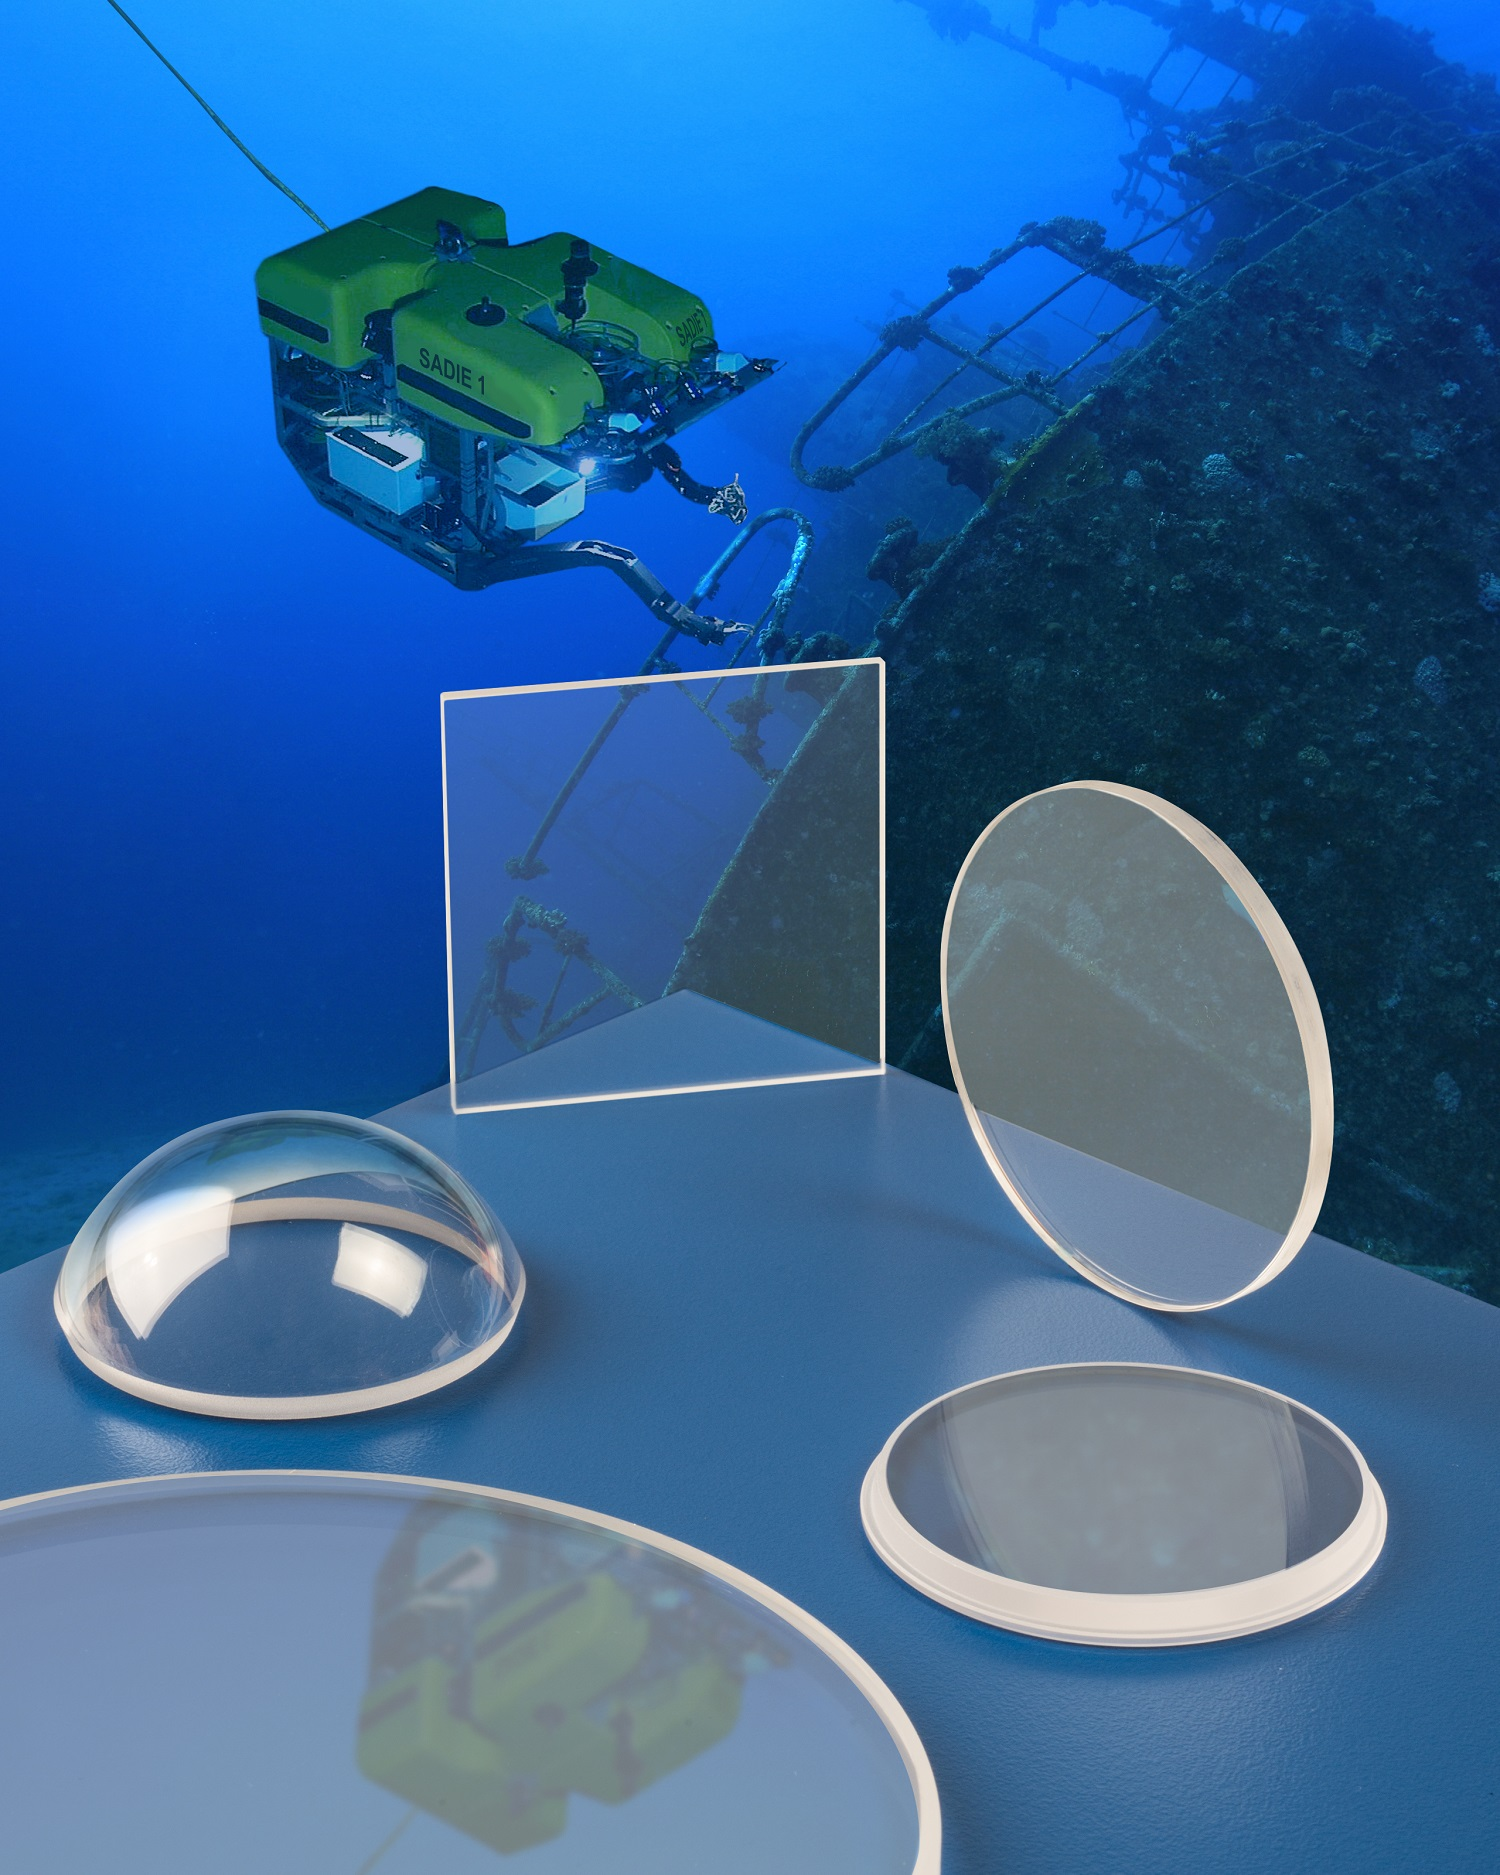 SAPPHIRE OPTICS WITHSTAND DEEP WATER PRESSURE